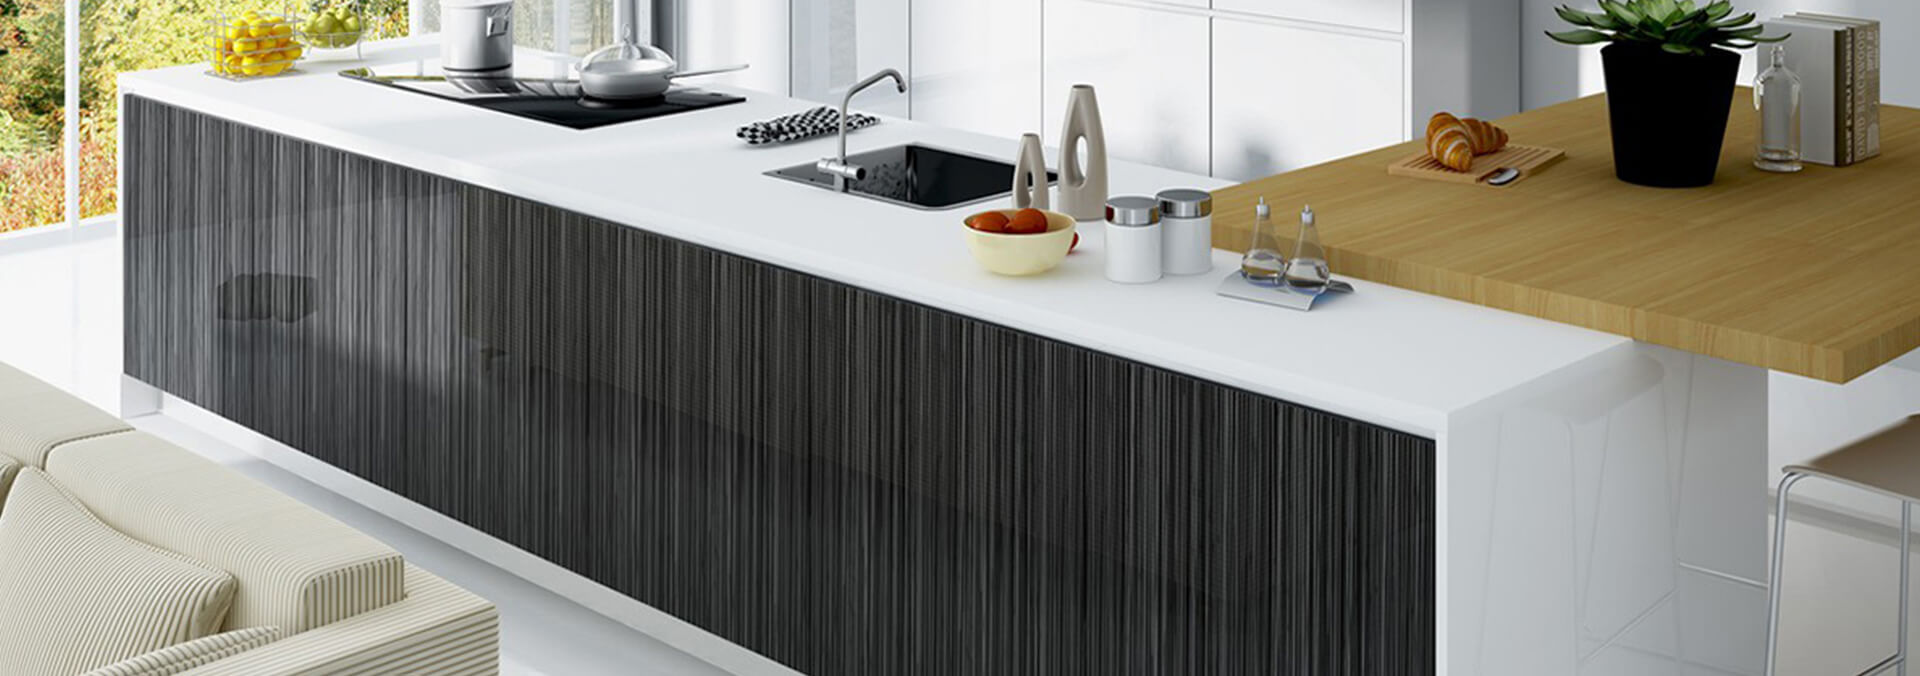 Why Choose High Gloss Kitchen Cabinets?